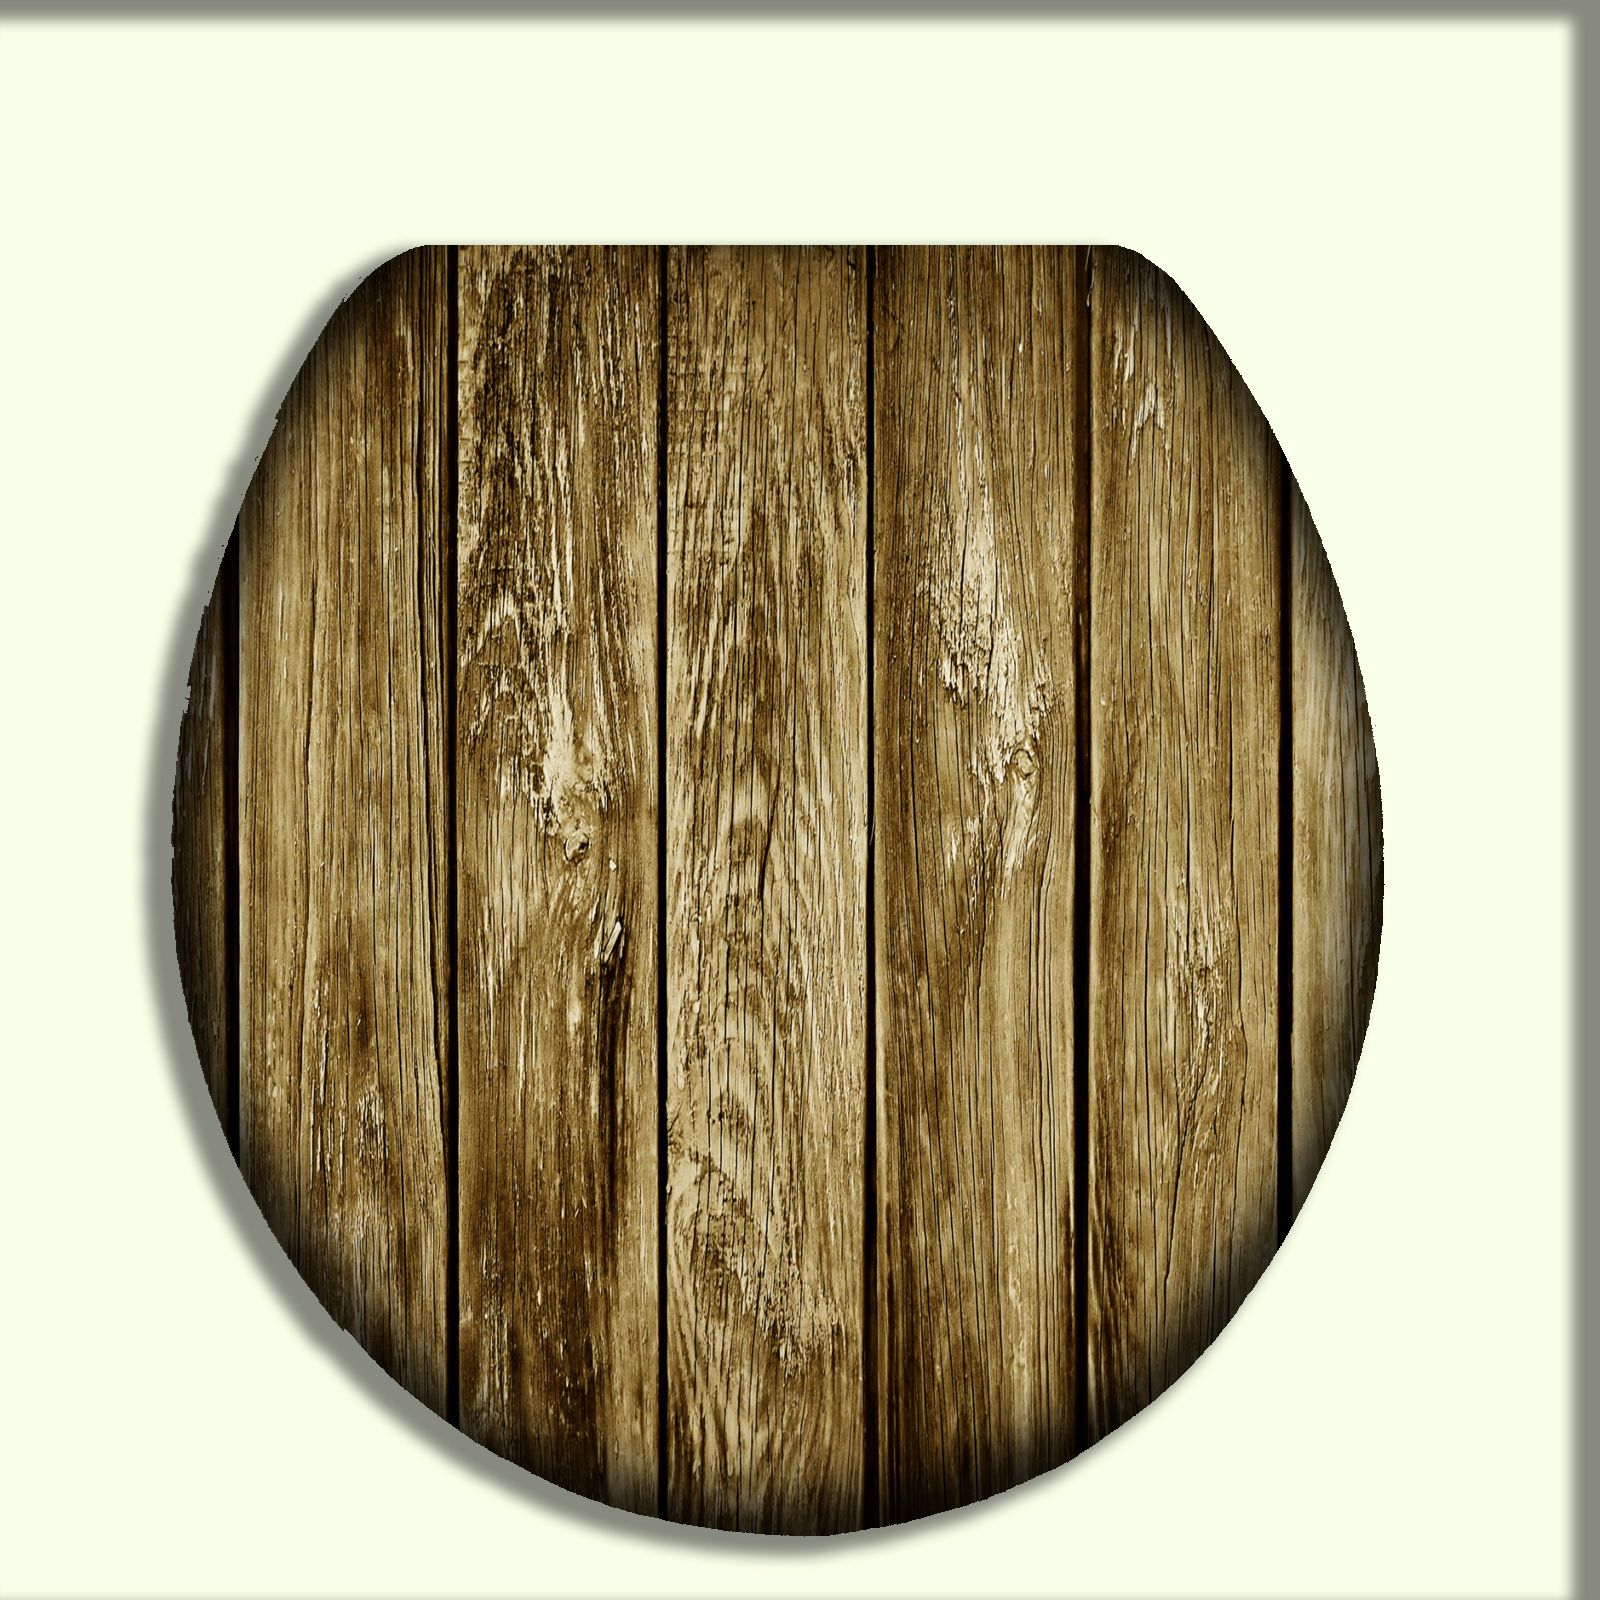 Marvelous Toilet Seat With Rustic Brownish Grey Reclaimed Wood Design Pdpeps Interior Chair Design Pdpepsorg